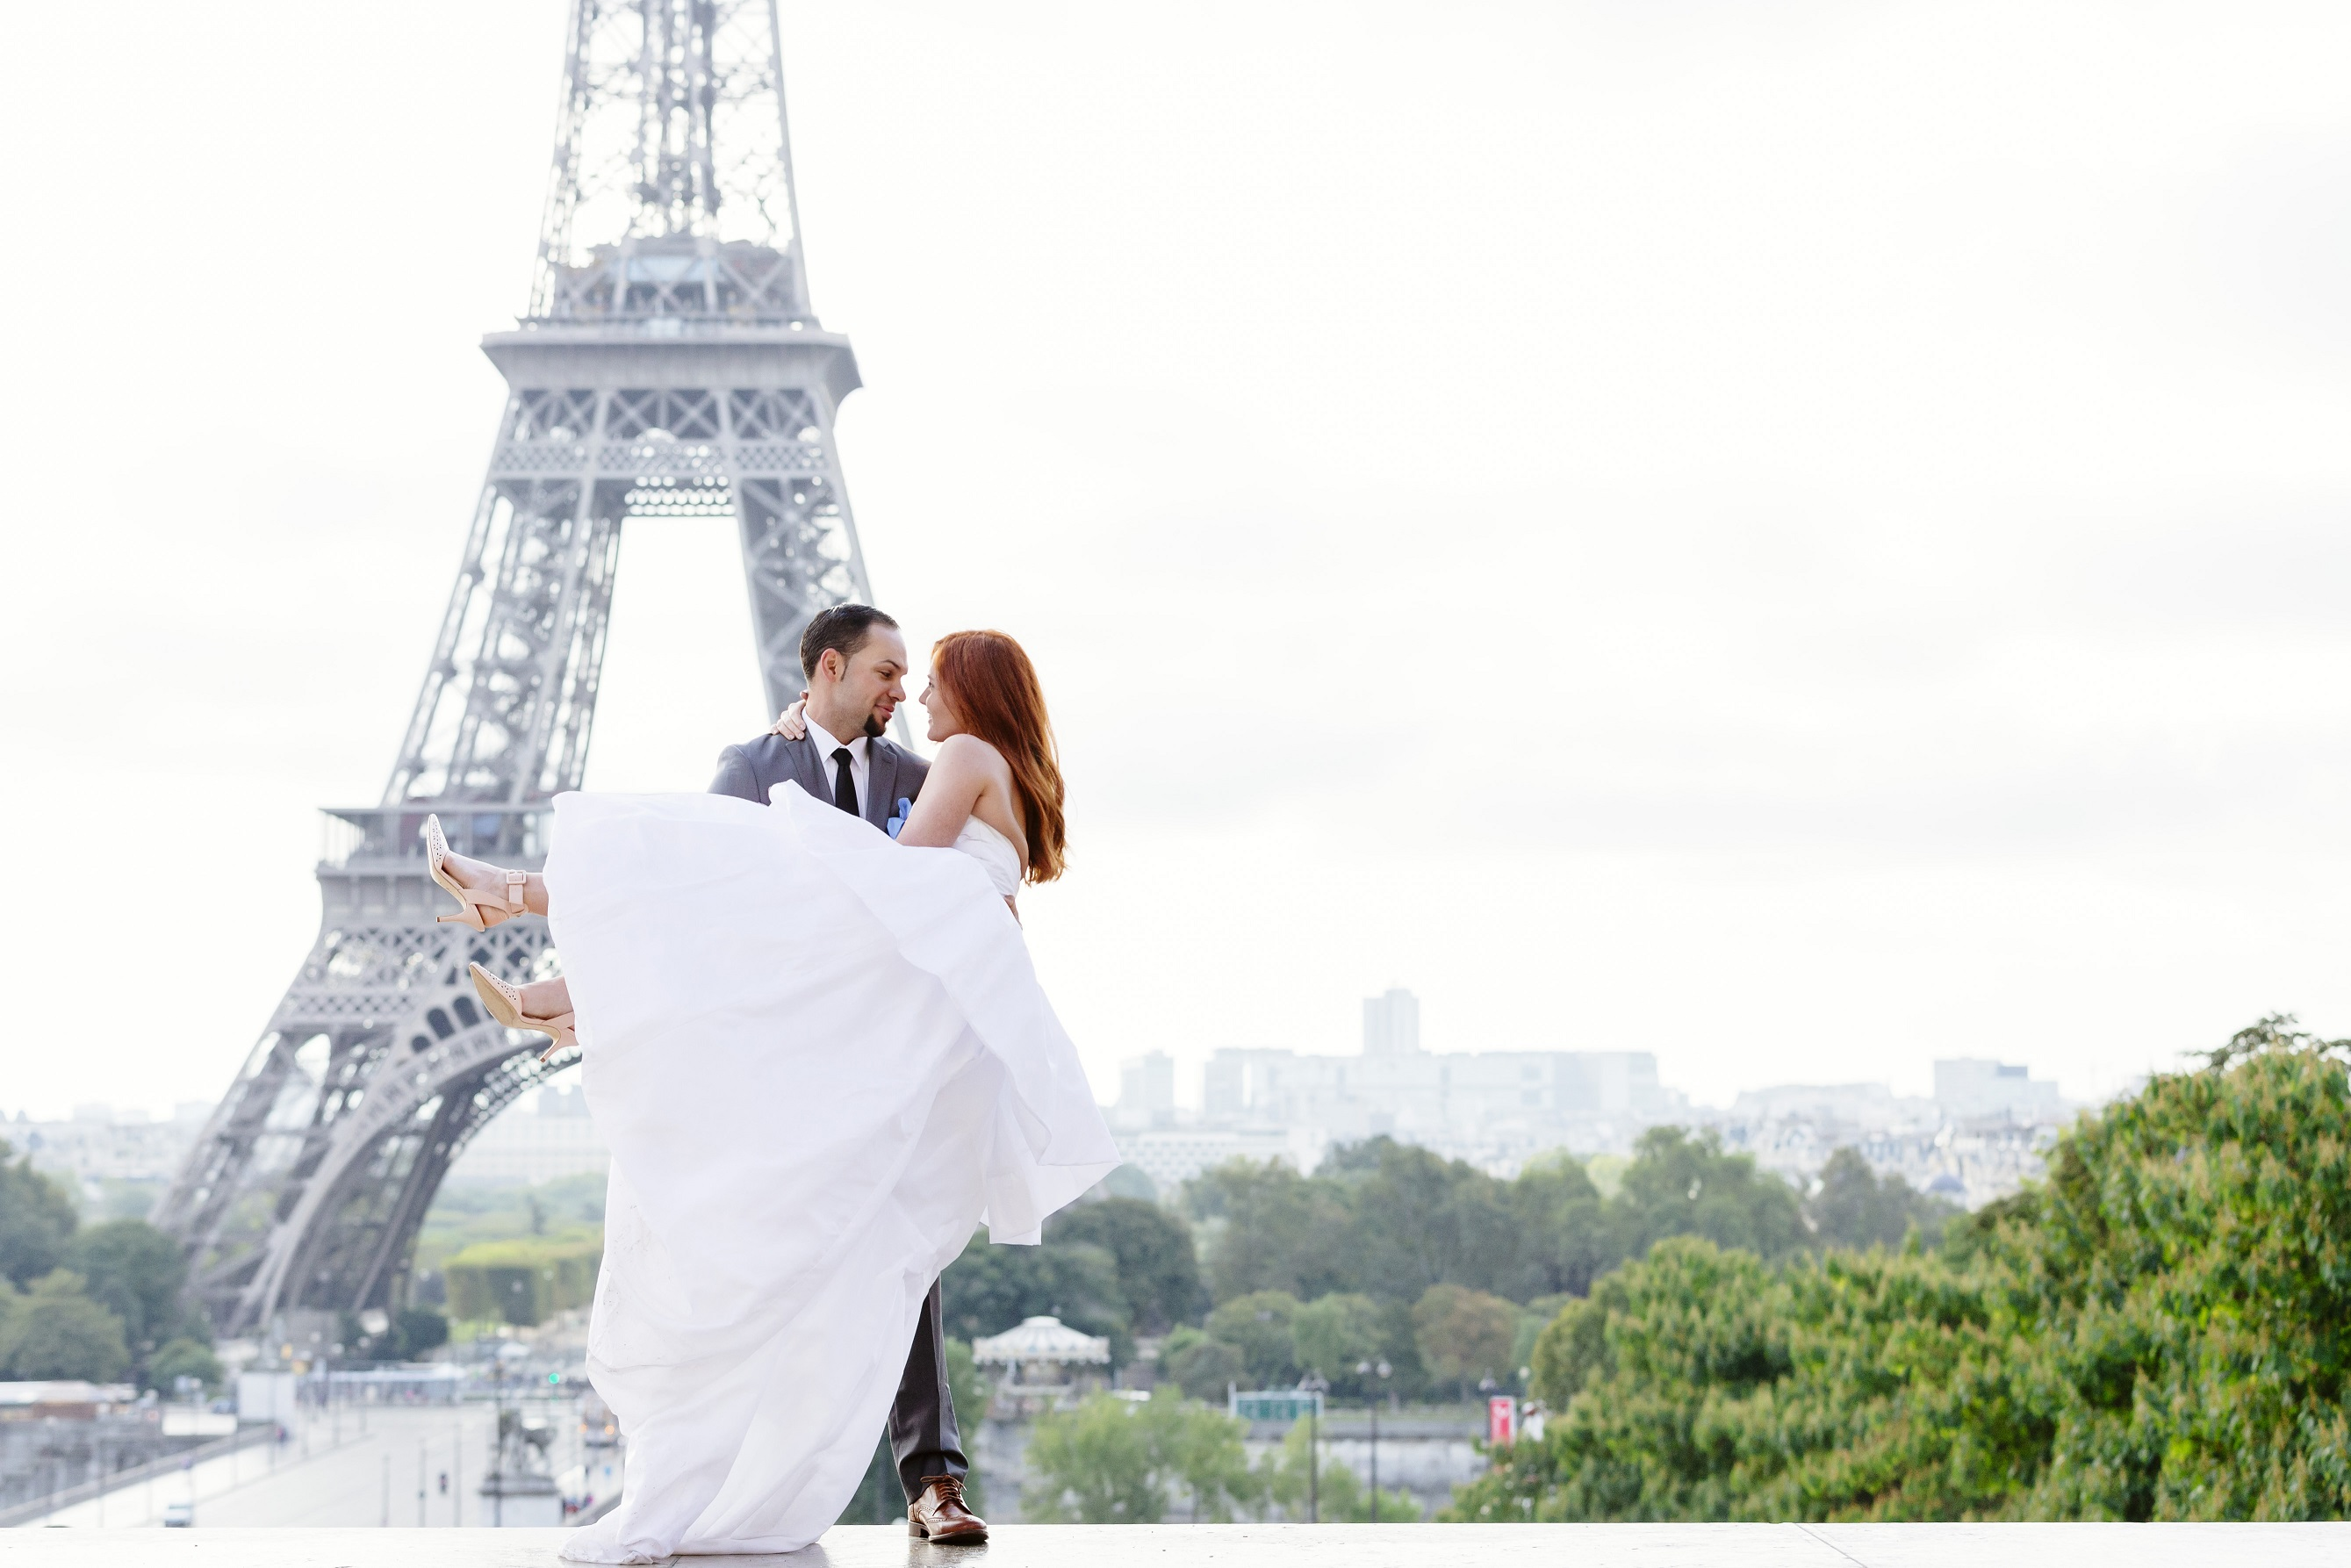 Groom TJ lifts up Bride Emily in front of the Eiffel Tower